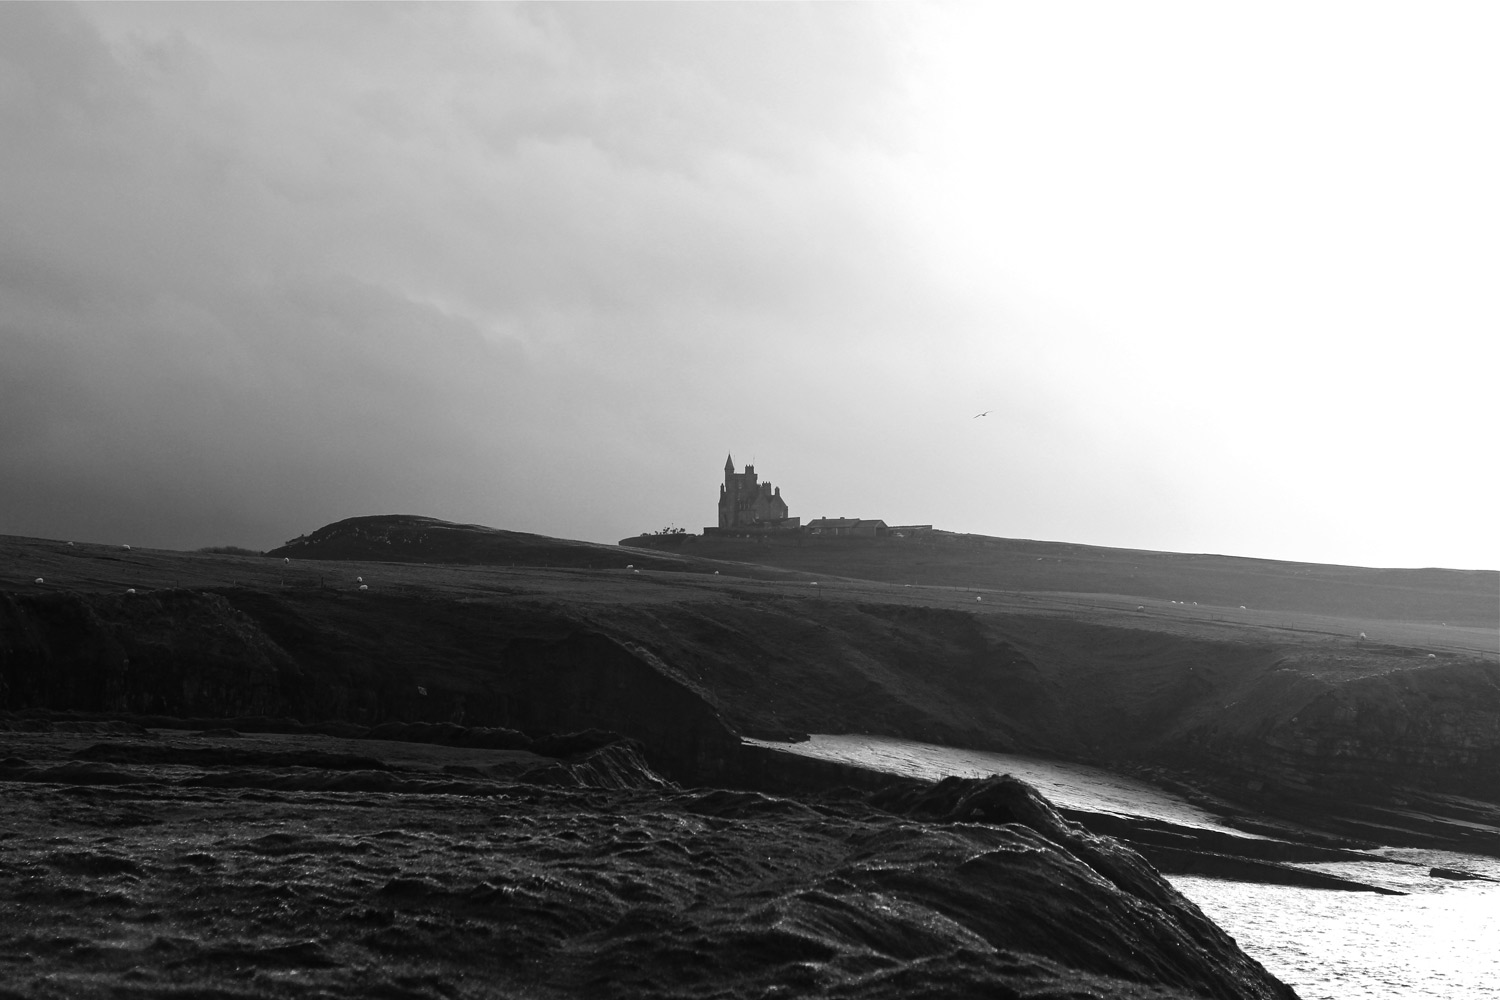 Classiebawn Castle on the Mullaghmore peninsula